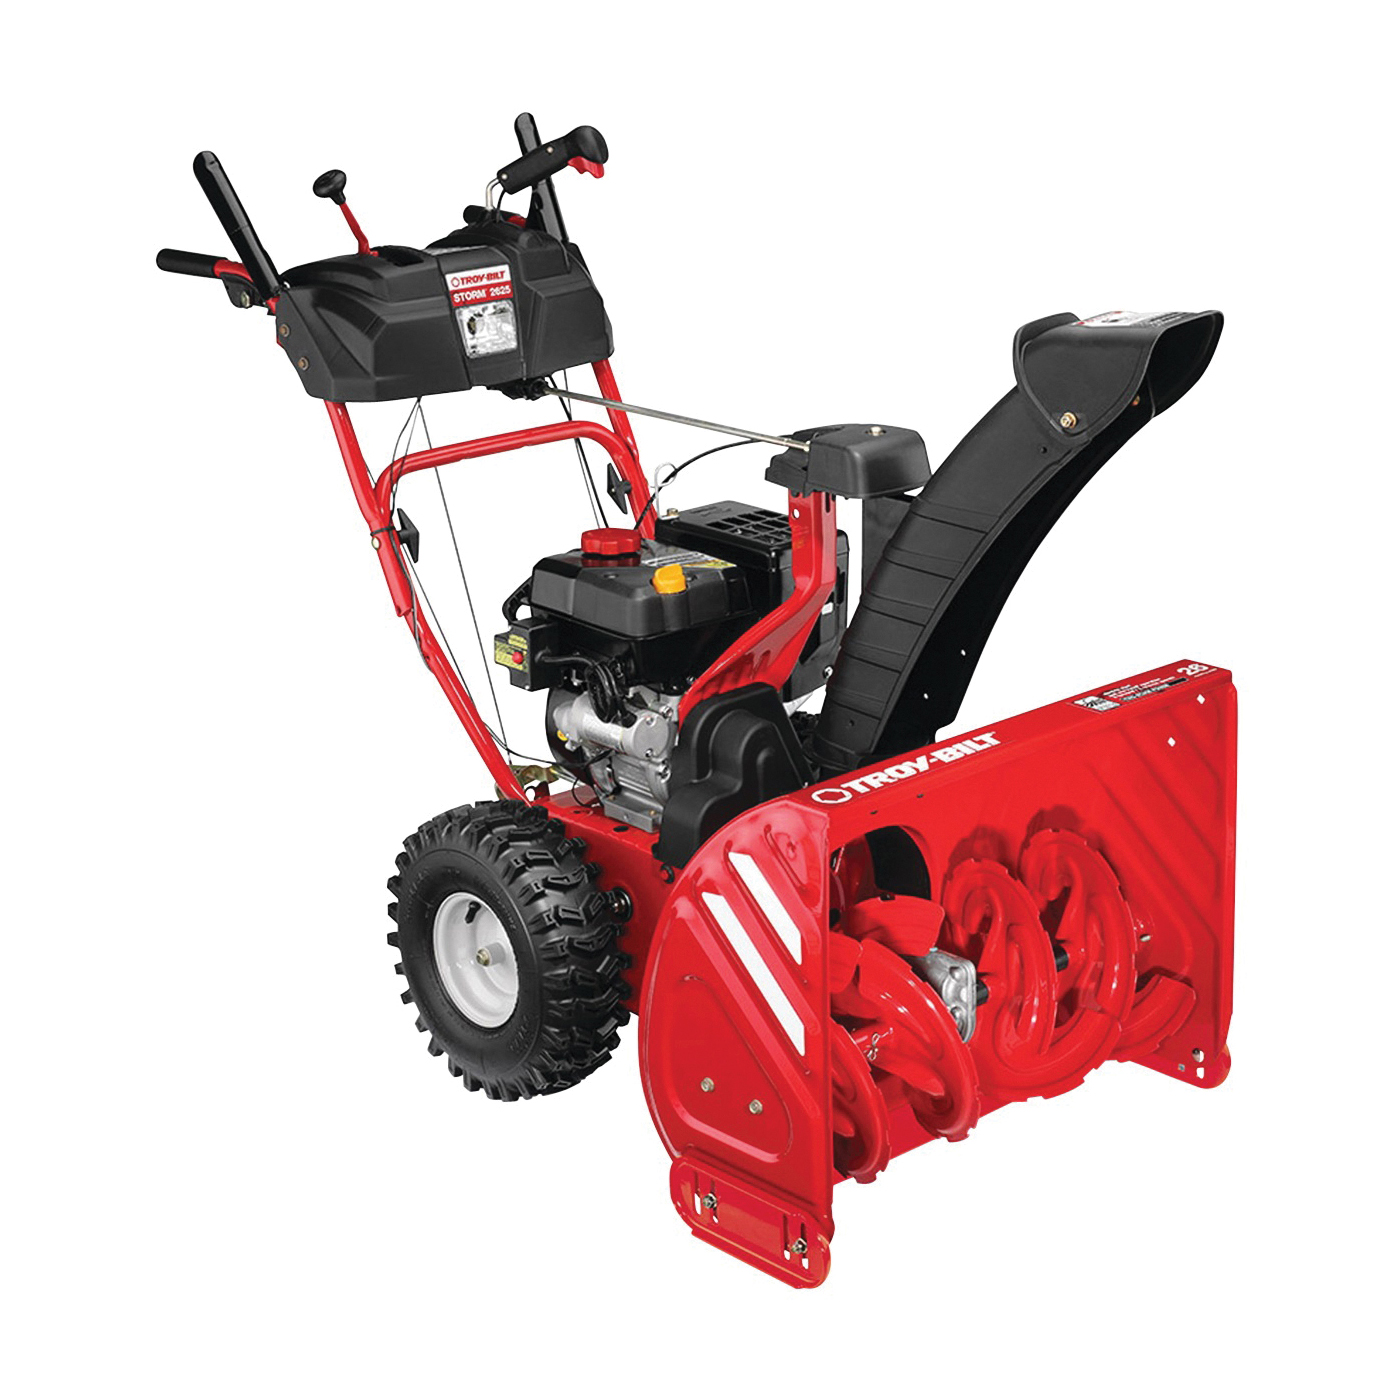 Picture of MTD 31BM6CP3766 Snow Thrower, 243 cc Engine Displacement, OHV Engine, 2 -Stage, Electric Start